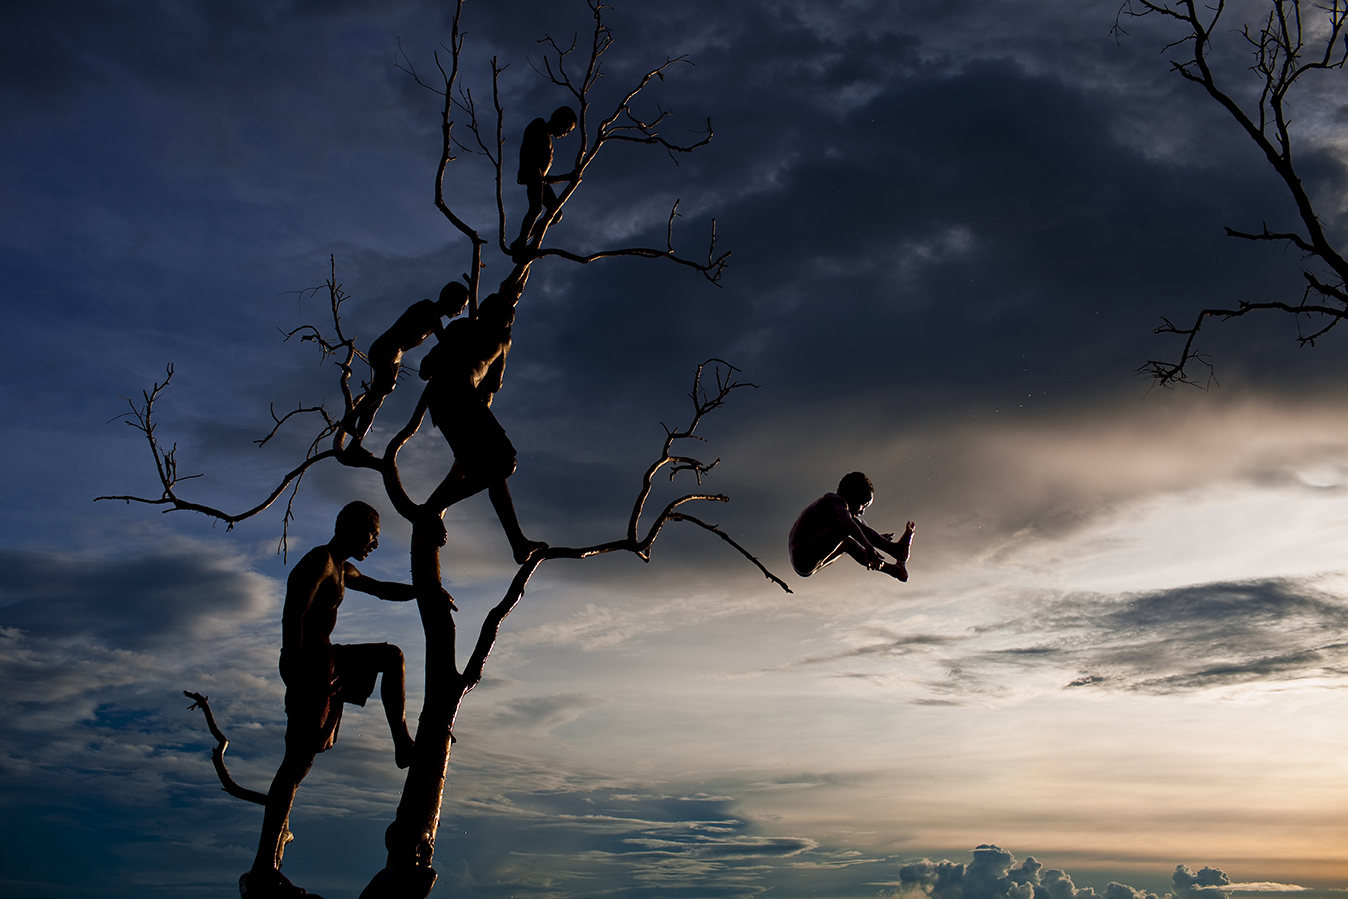 2nd Place - Brent Stirton - South Africa